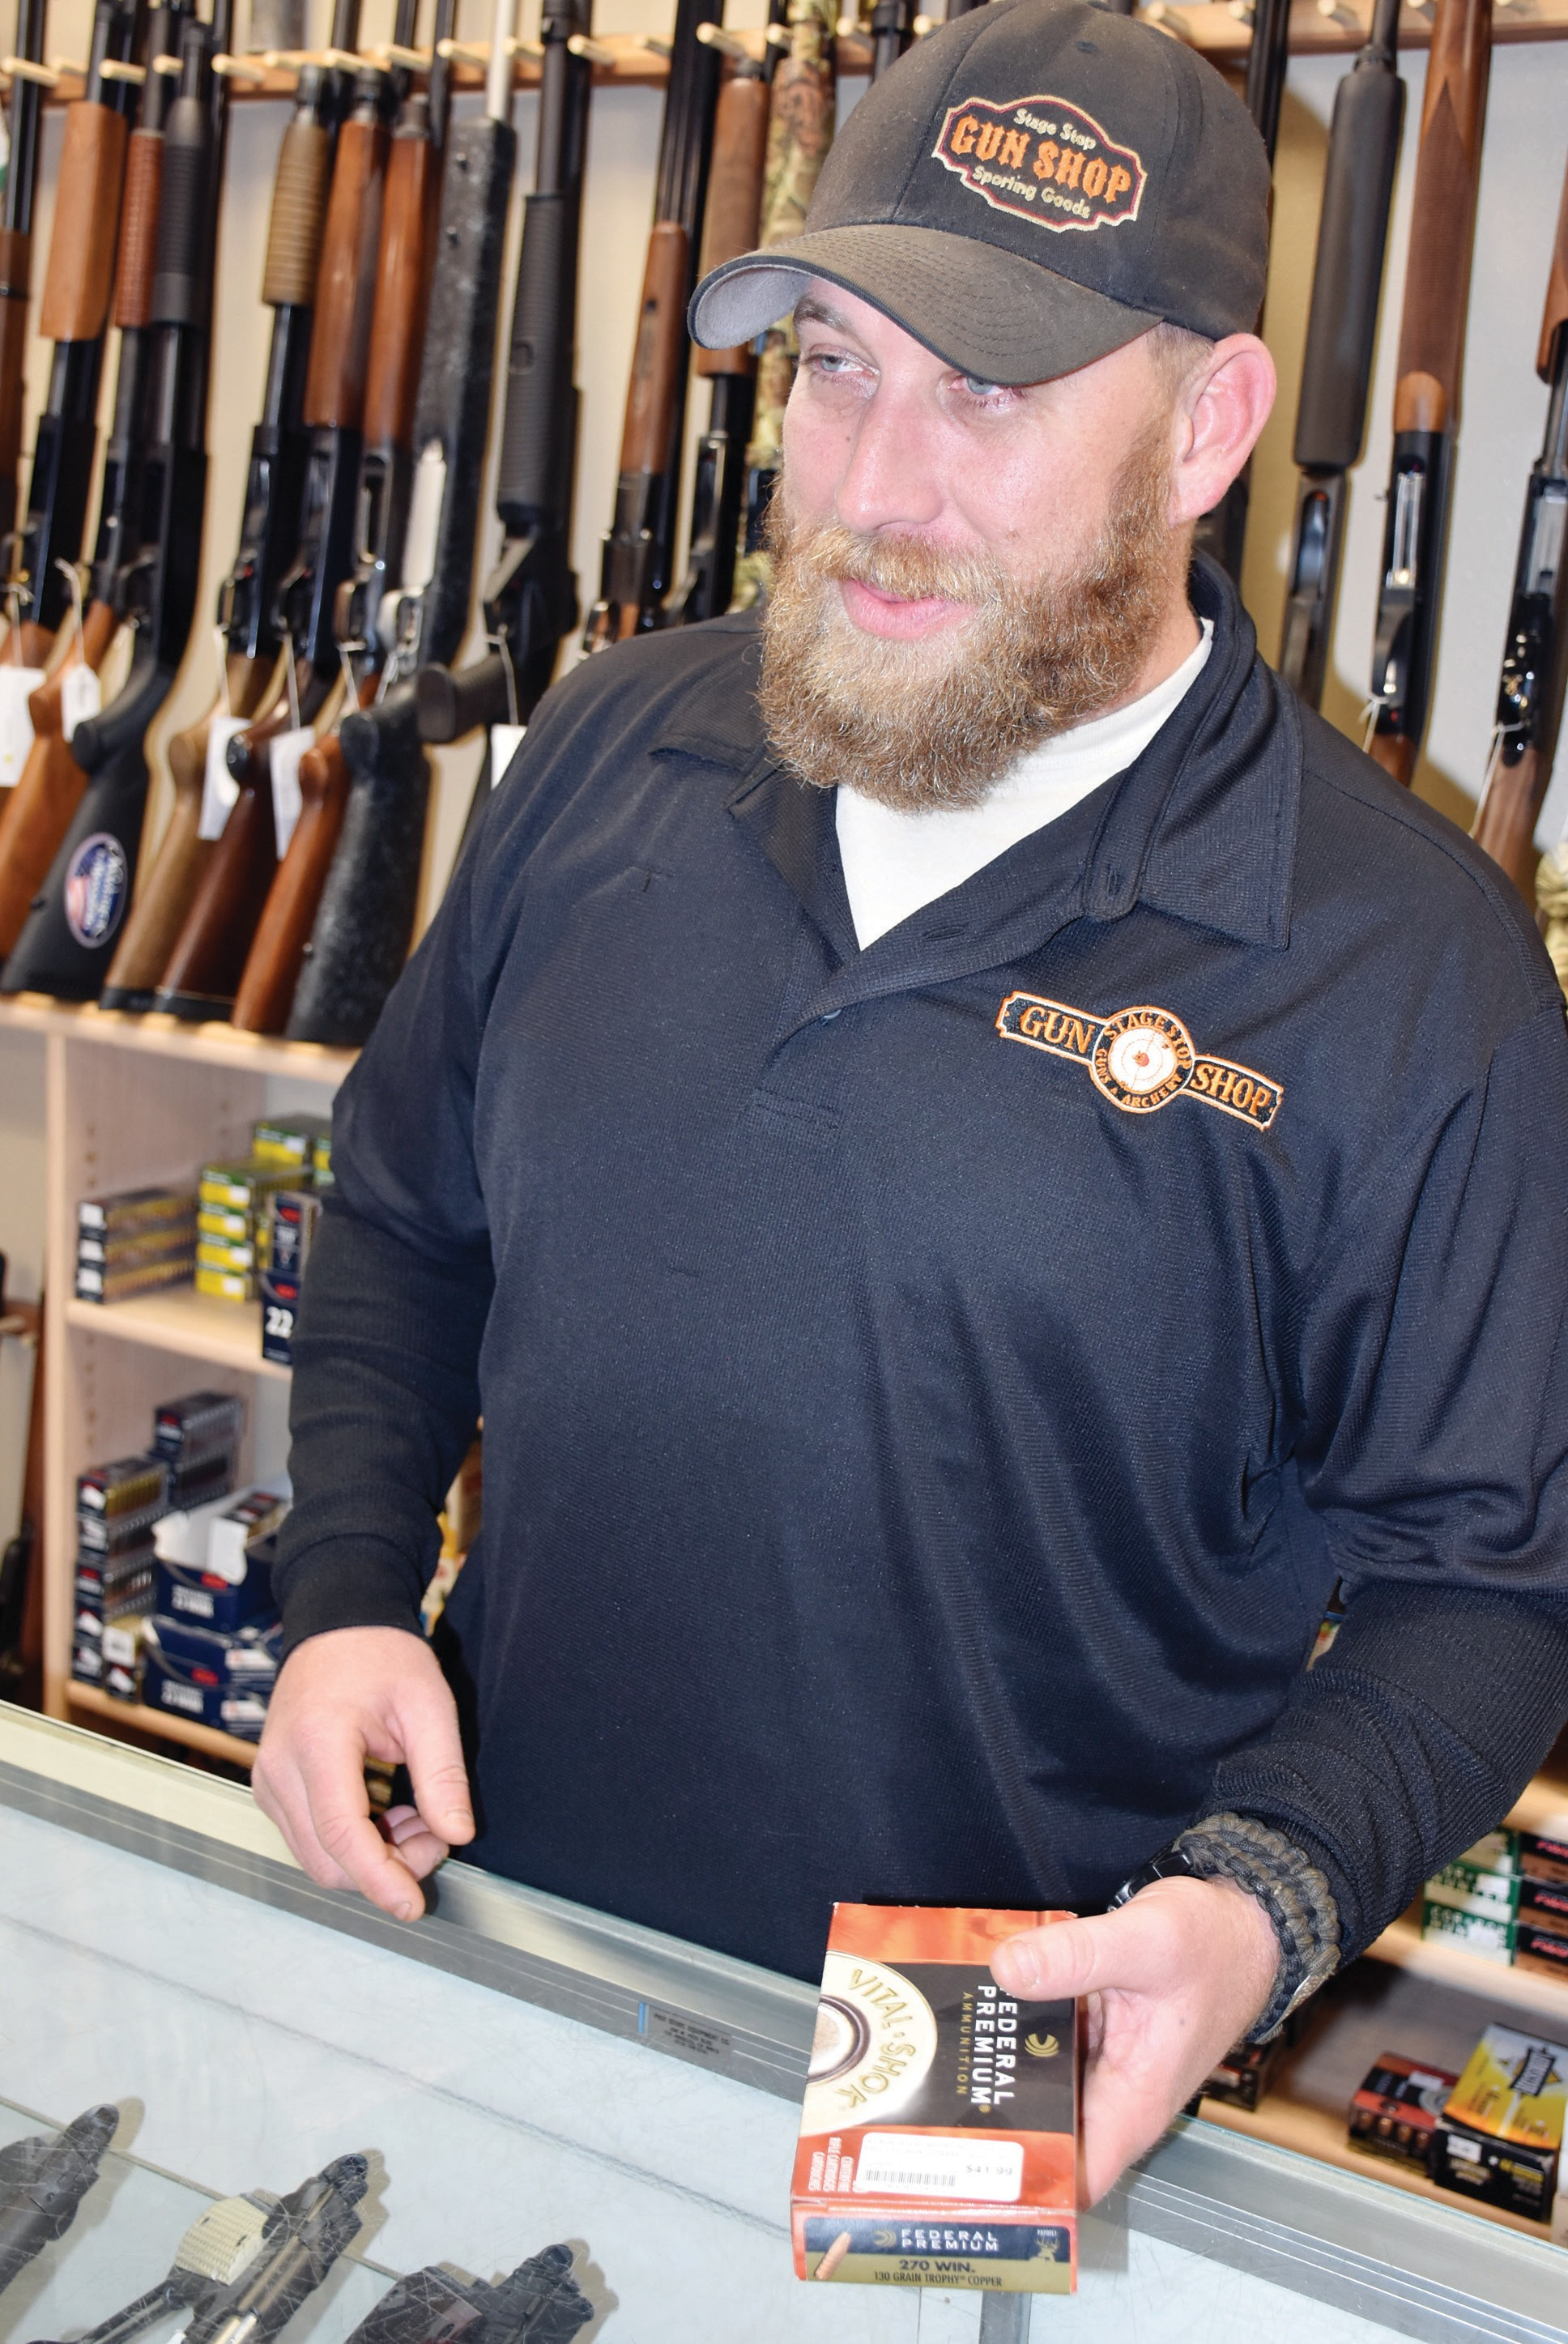 Ronald Luker of Stage Stop Gun Shop in Mariposa is shown earlier this week at the shop. New gun laws go into effect on Jan. 1, 2018 in California. Photo by Nicole W. Little